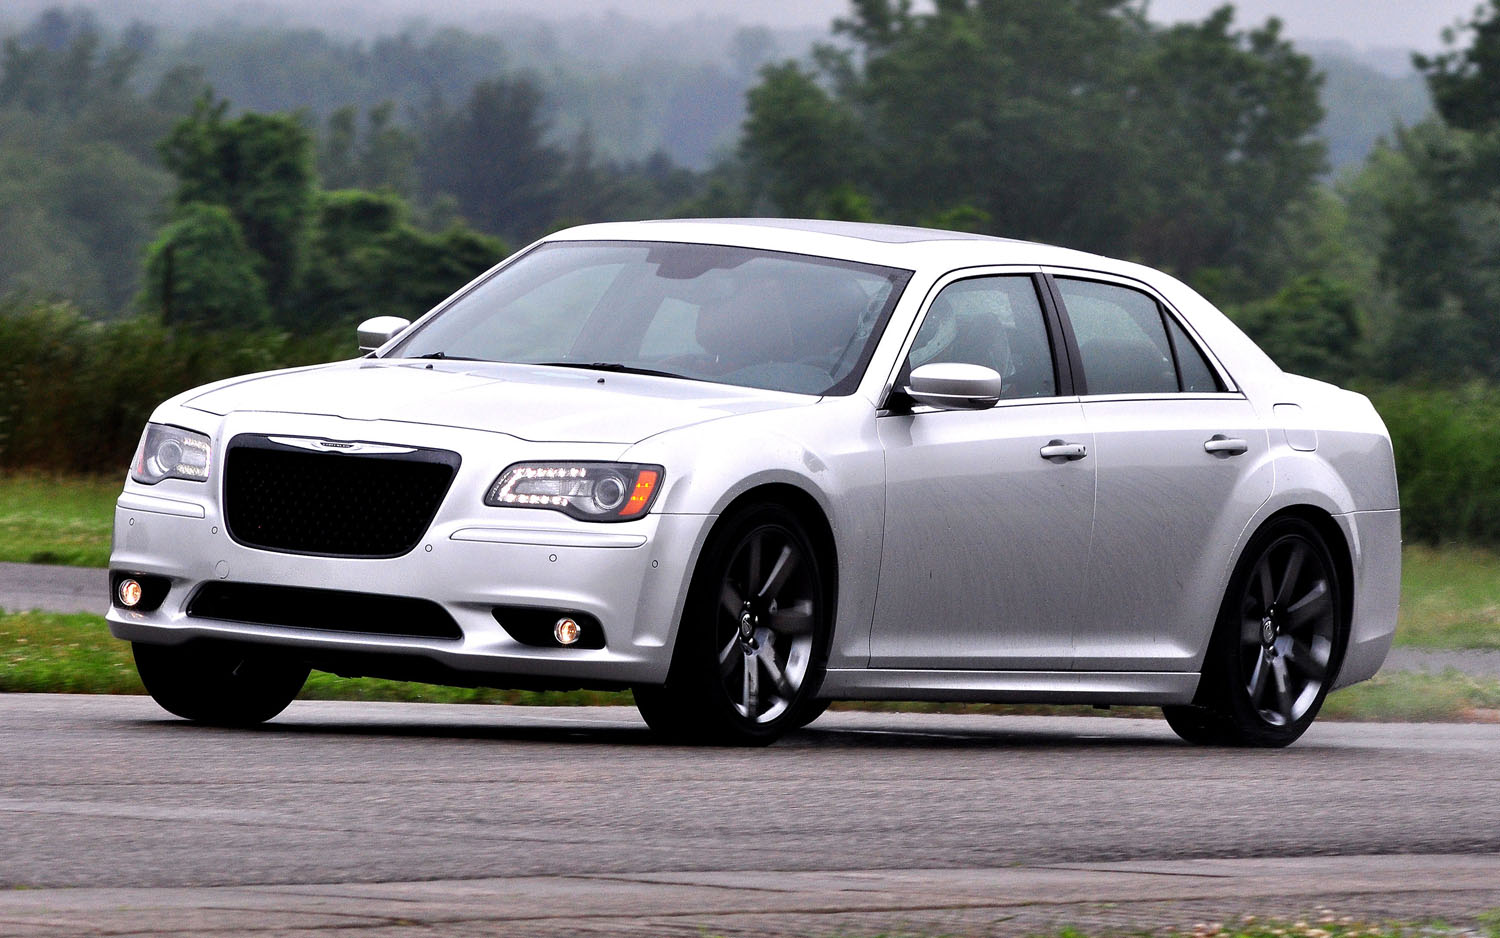 2012 Chrysler 300 SRT8 Front Three Quarter1